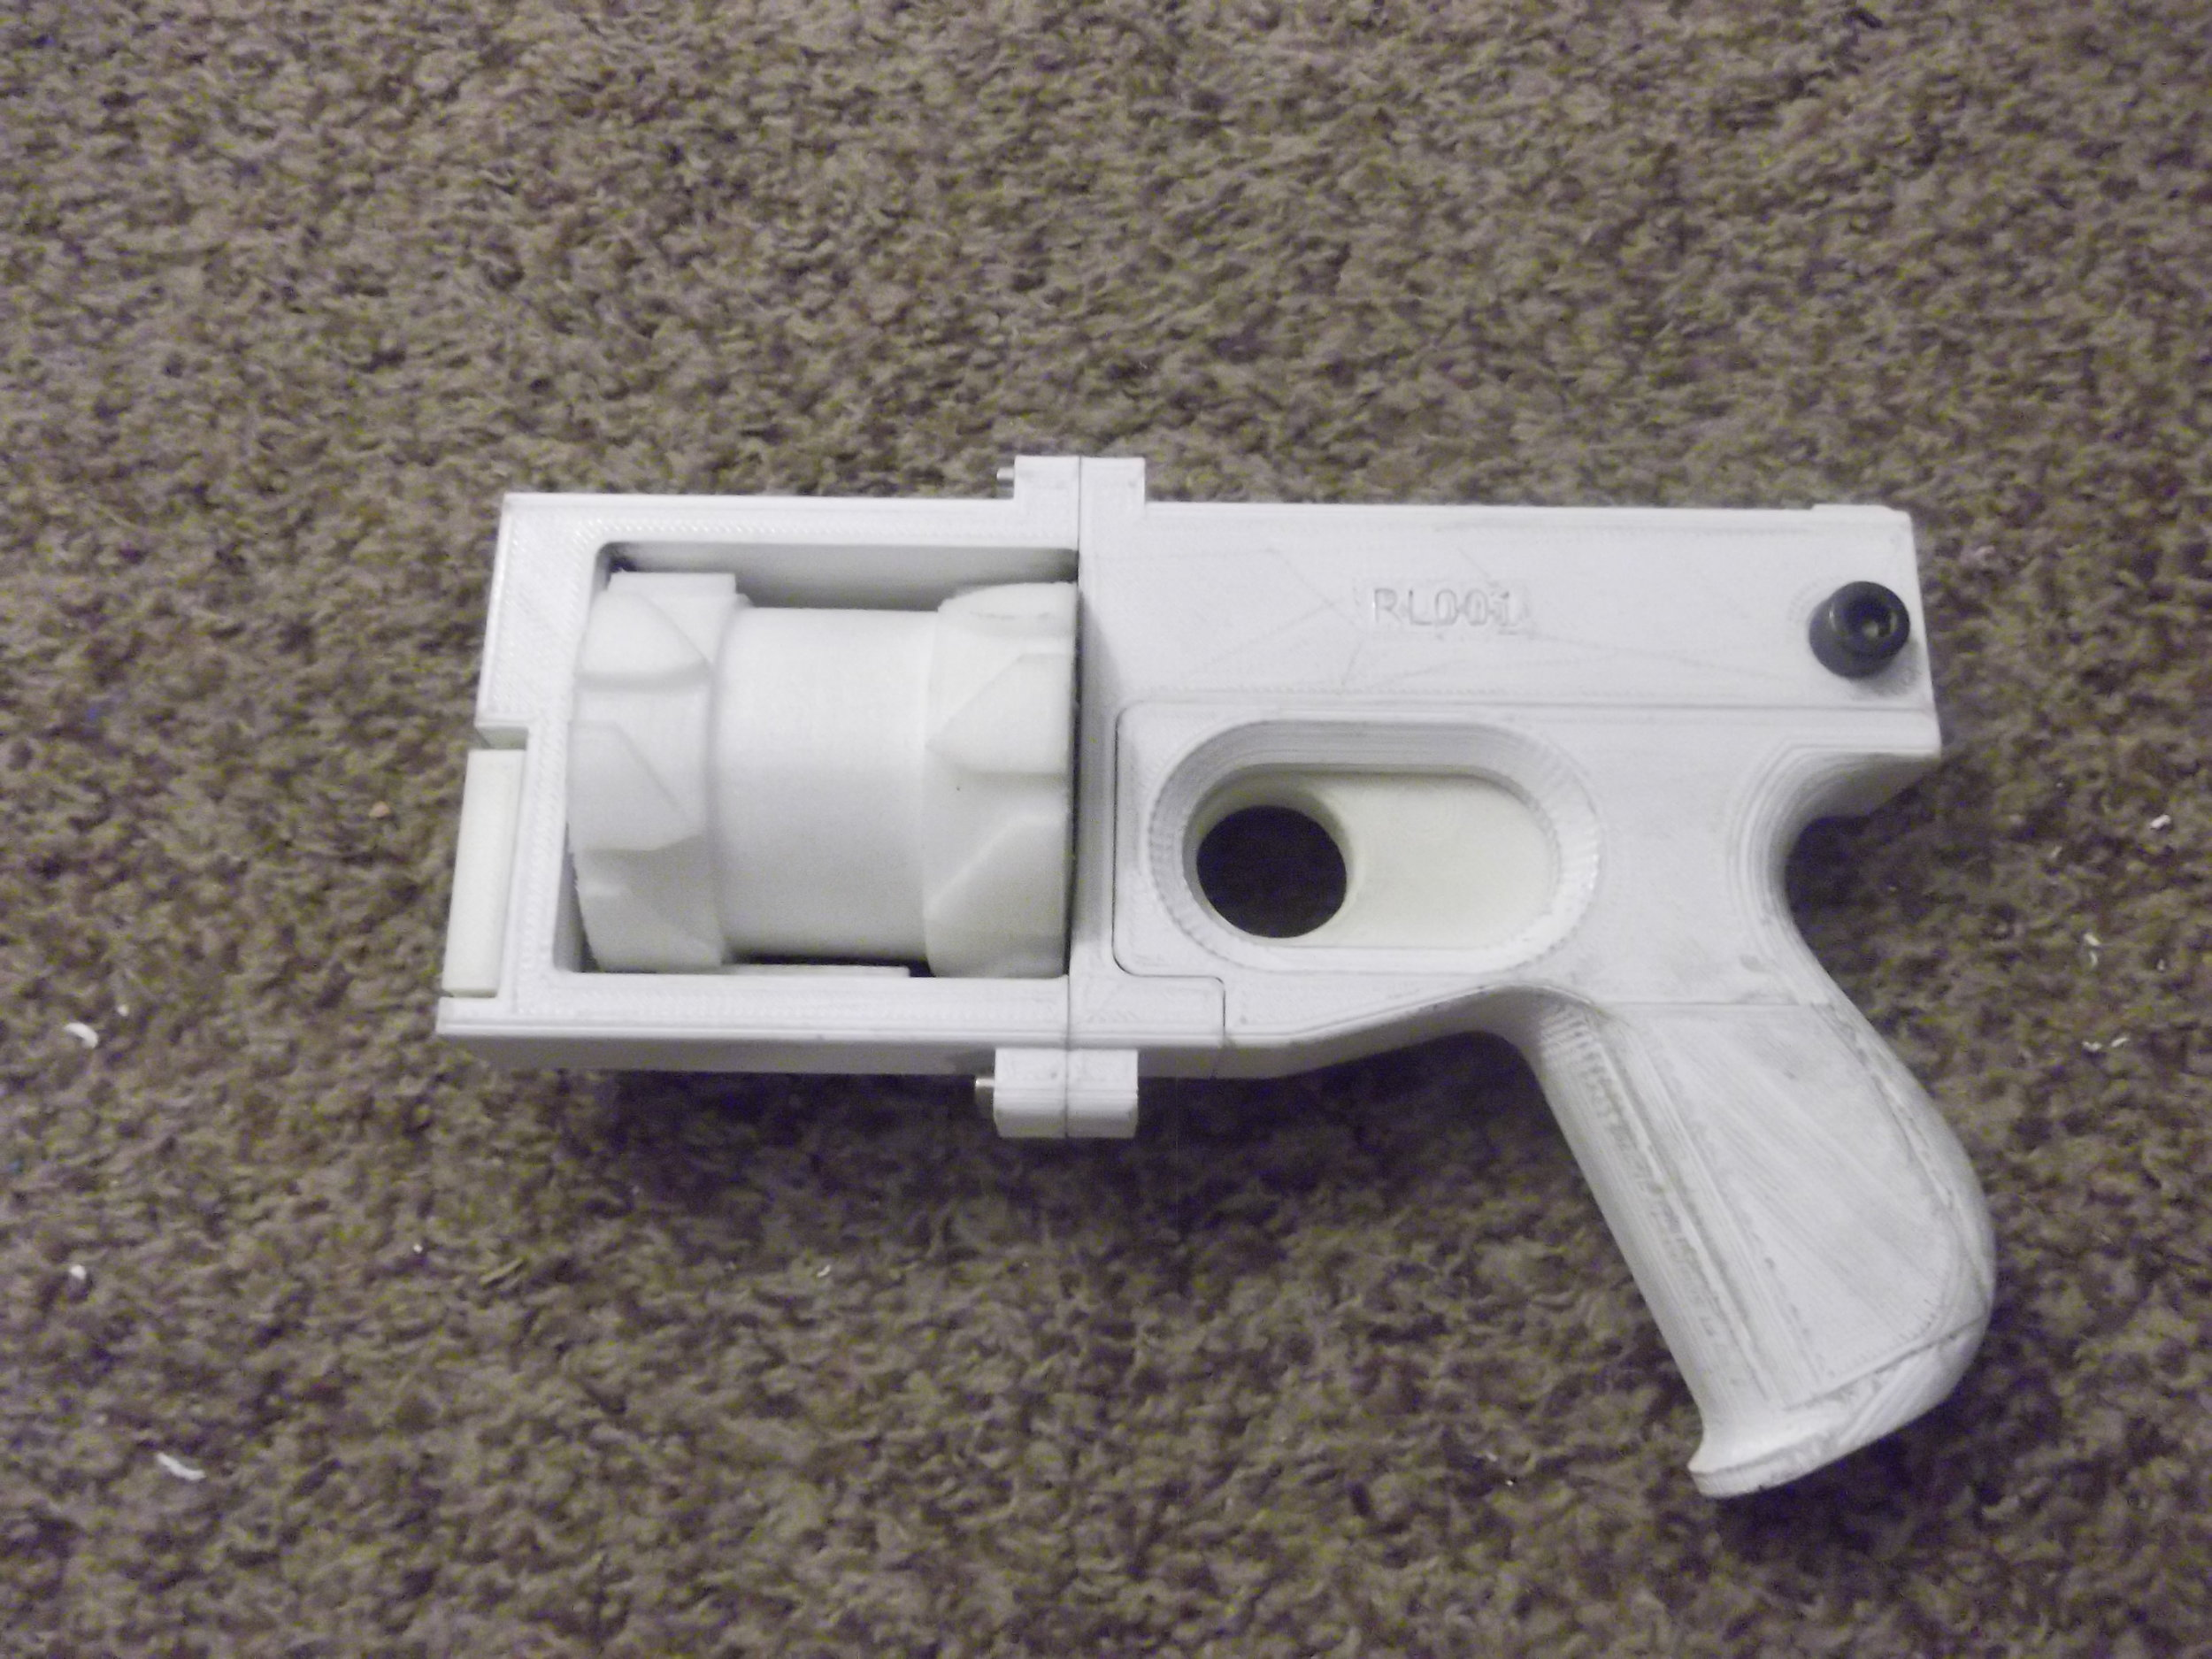 """3D printed """"washbear"""" pistol uploaded by imgur user zimirken. The gun is printed from a combination of Nylon and PLA. The cylinders each contain a rifled stainless steel insert which supports the cartridge and bullet for half the length before transitioning to rifled nylon. It fires a .22 long rifle cartridge."""